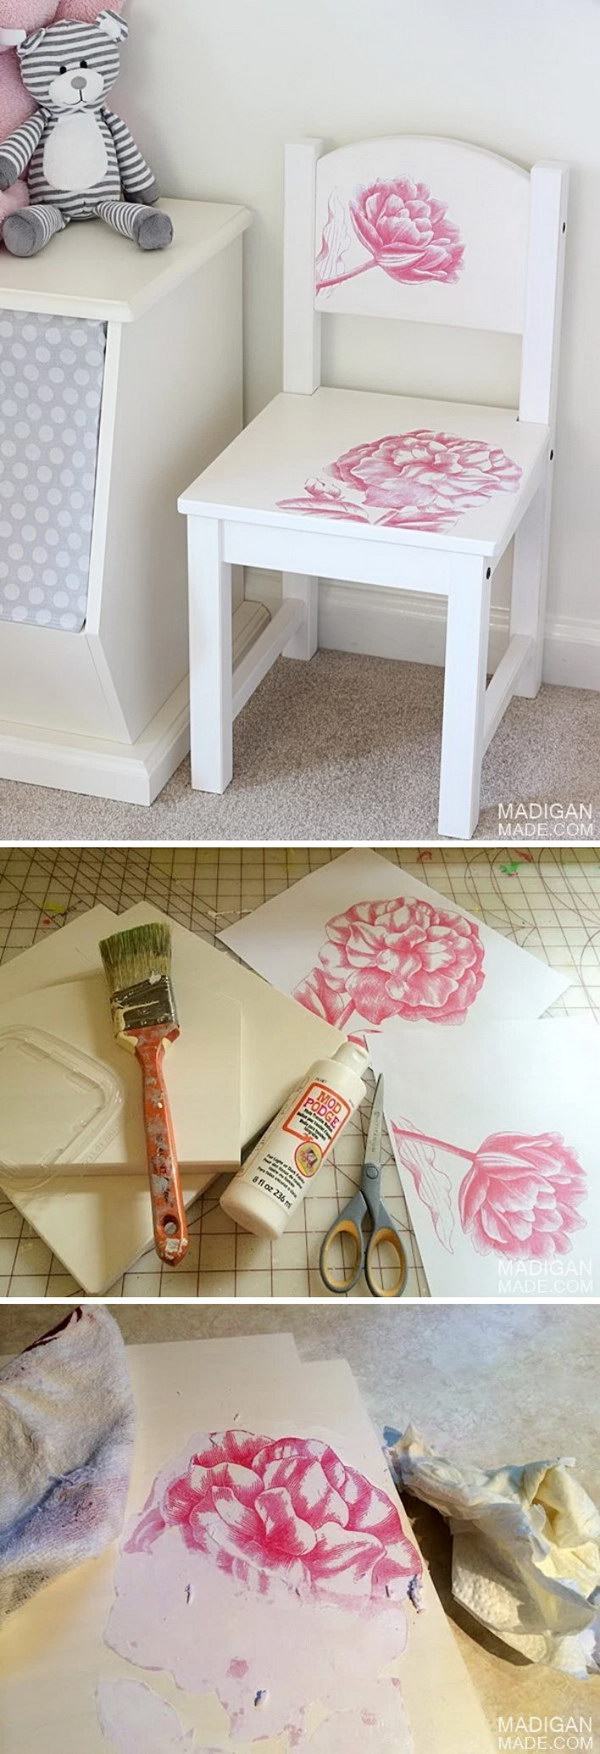 DIY Child's Chair with Photo Transfer Medium.